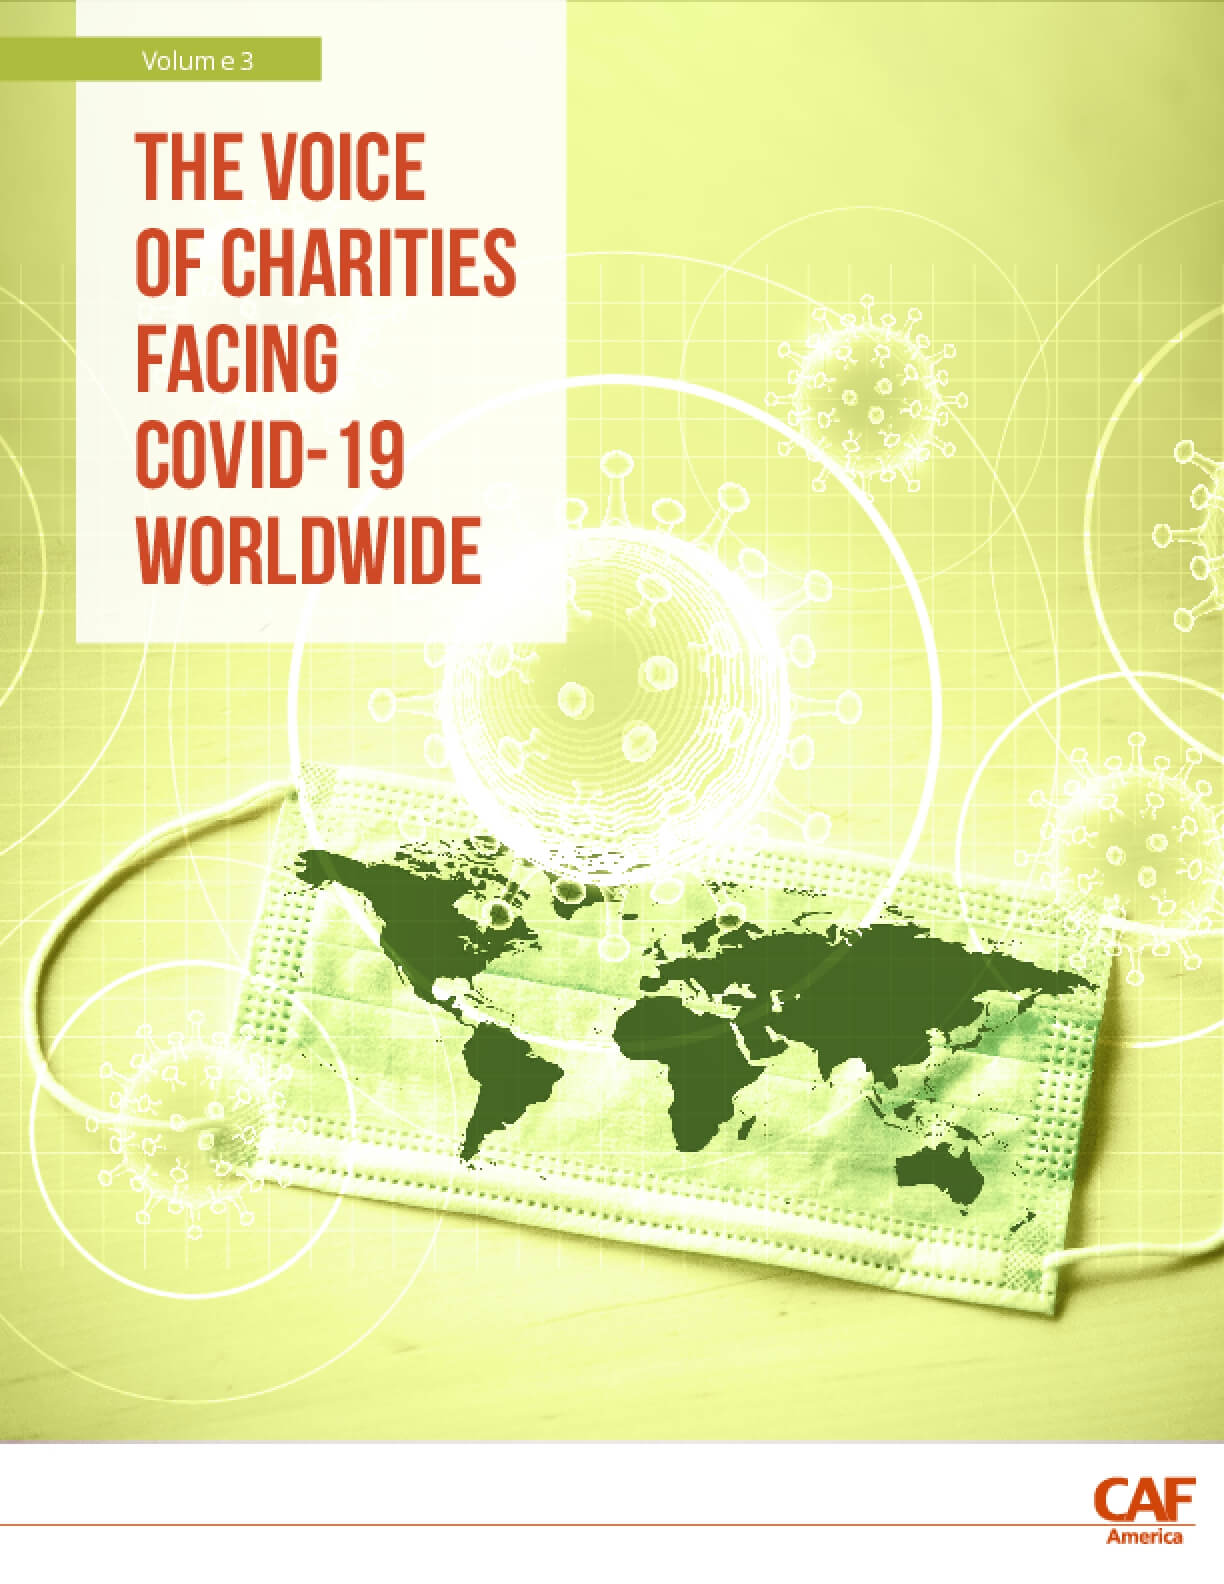 The Voice of Charities Facing COVID-19 Worldwide, Volume 3